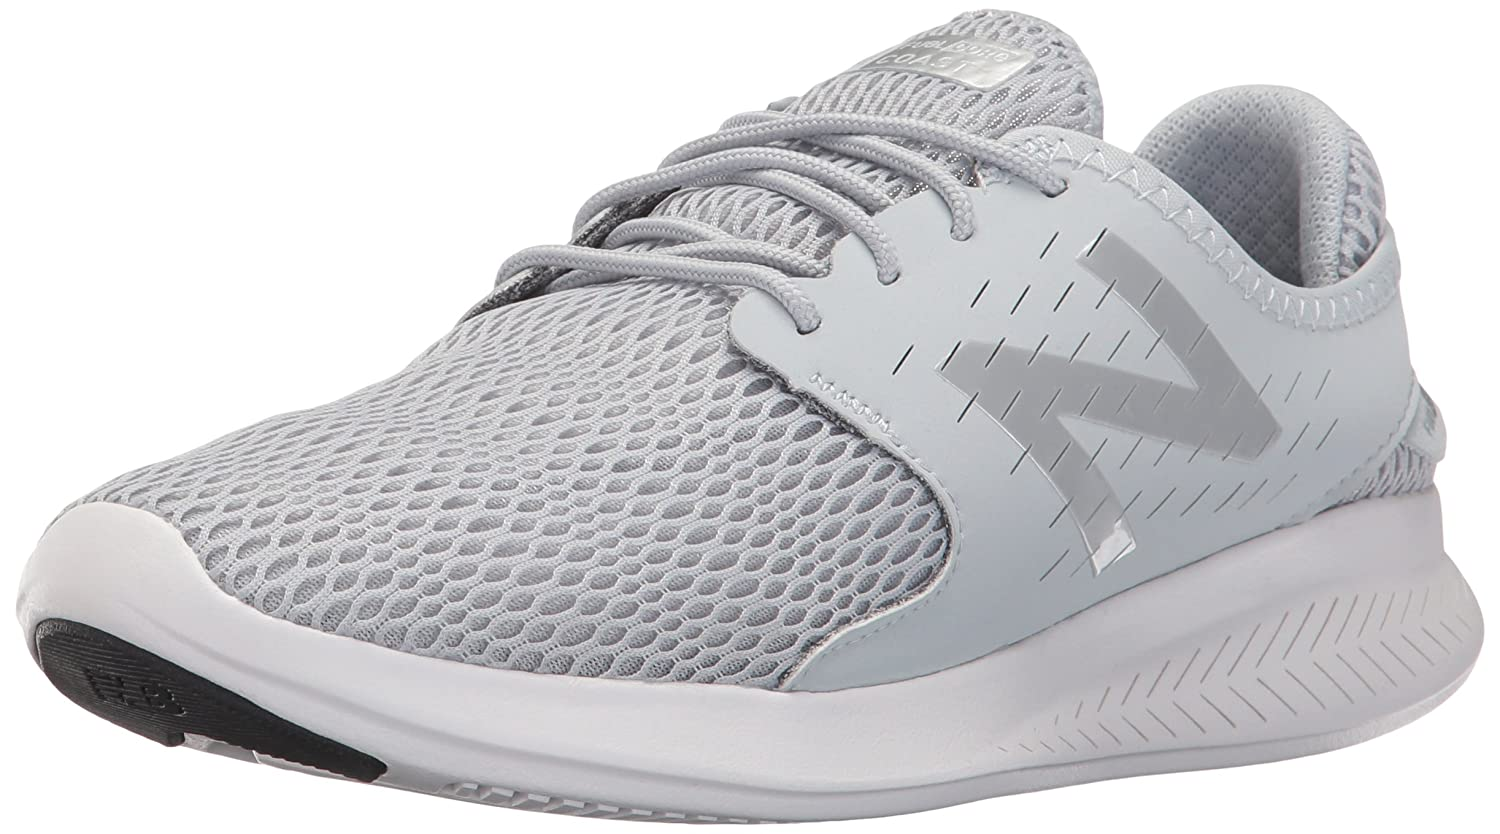 New Balance Women's Coast V3 Running-Shoes B01N77Y1CJ 11 B(M) US|Light Grey